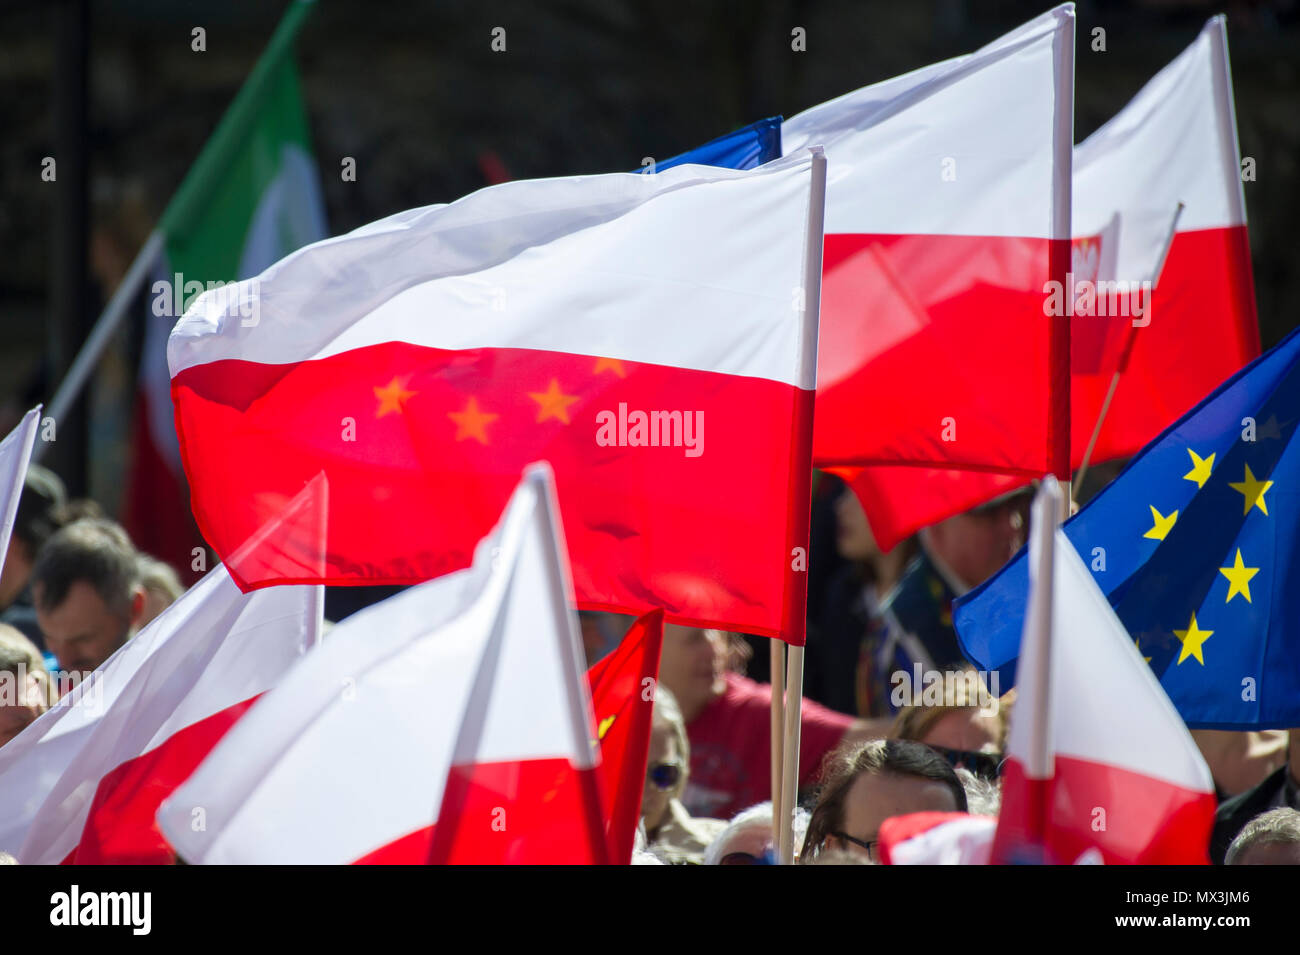 Anti ONR protest in Gdansk, Poland. April 21st 2018 © Wojciech Strozyk / Alamy Stock Photo - Stock Image